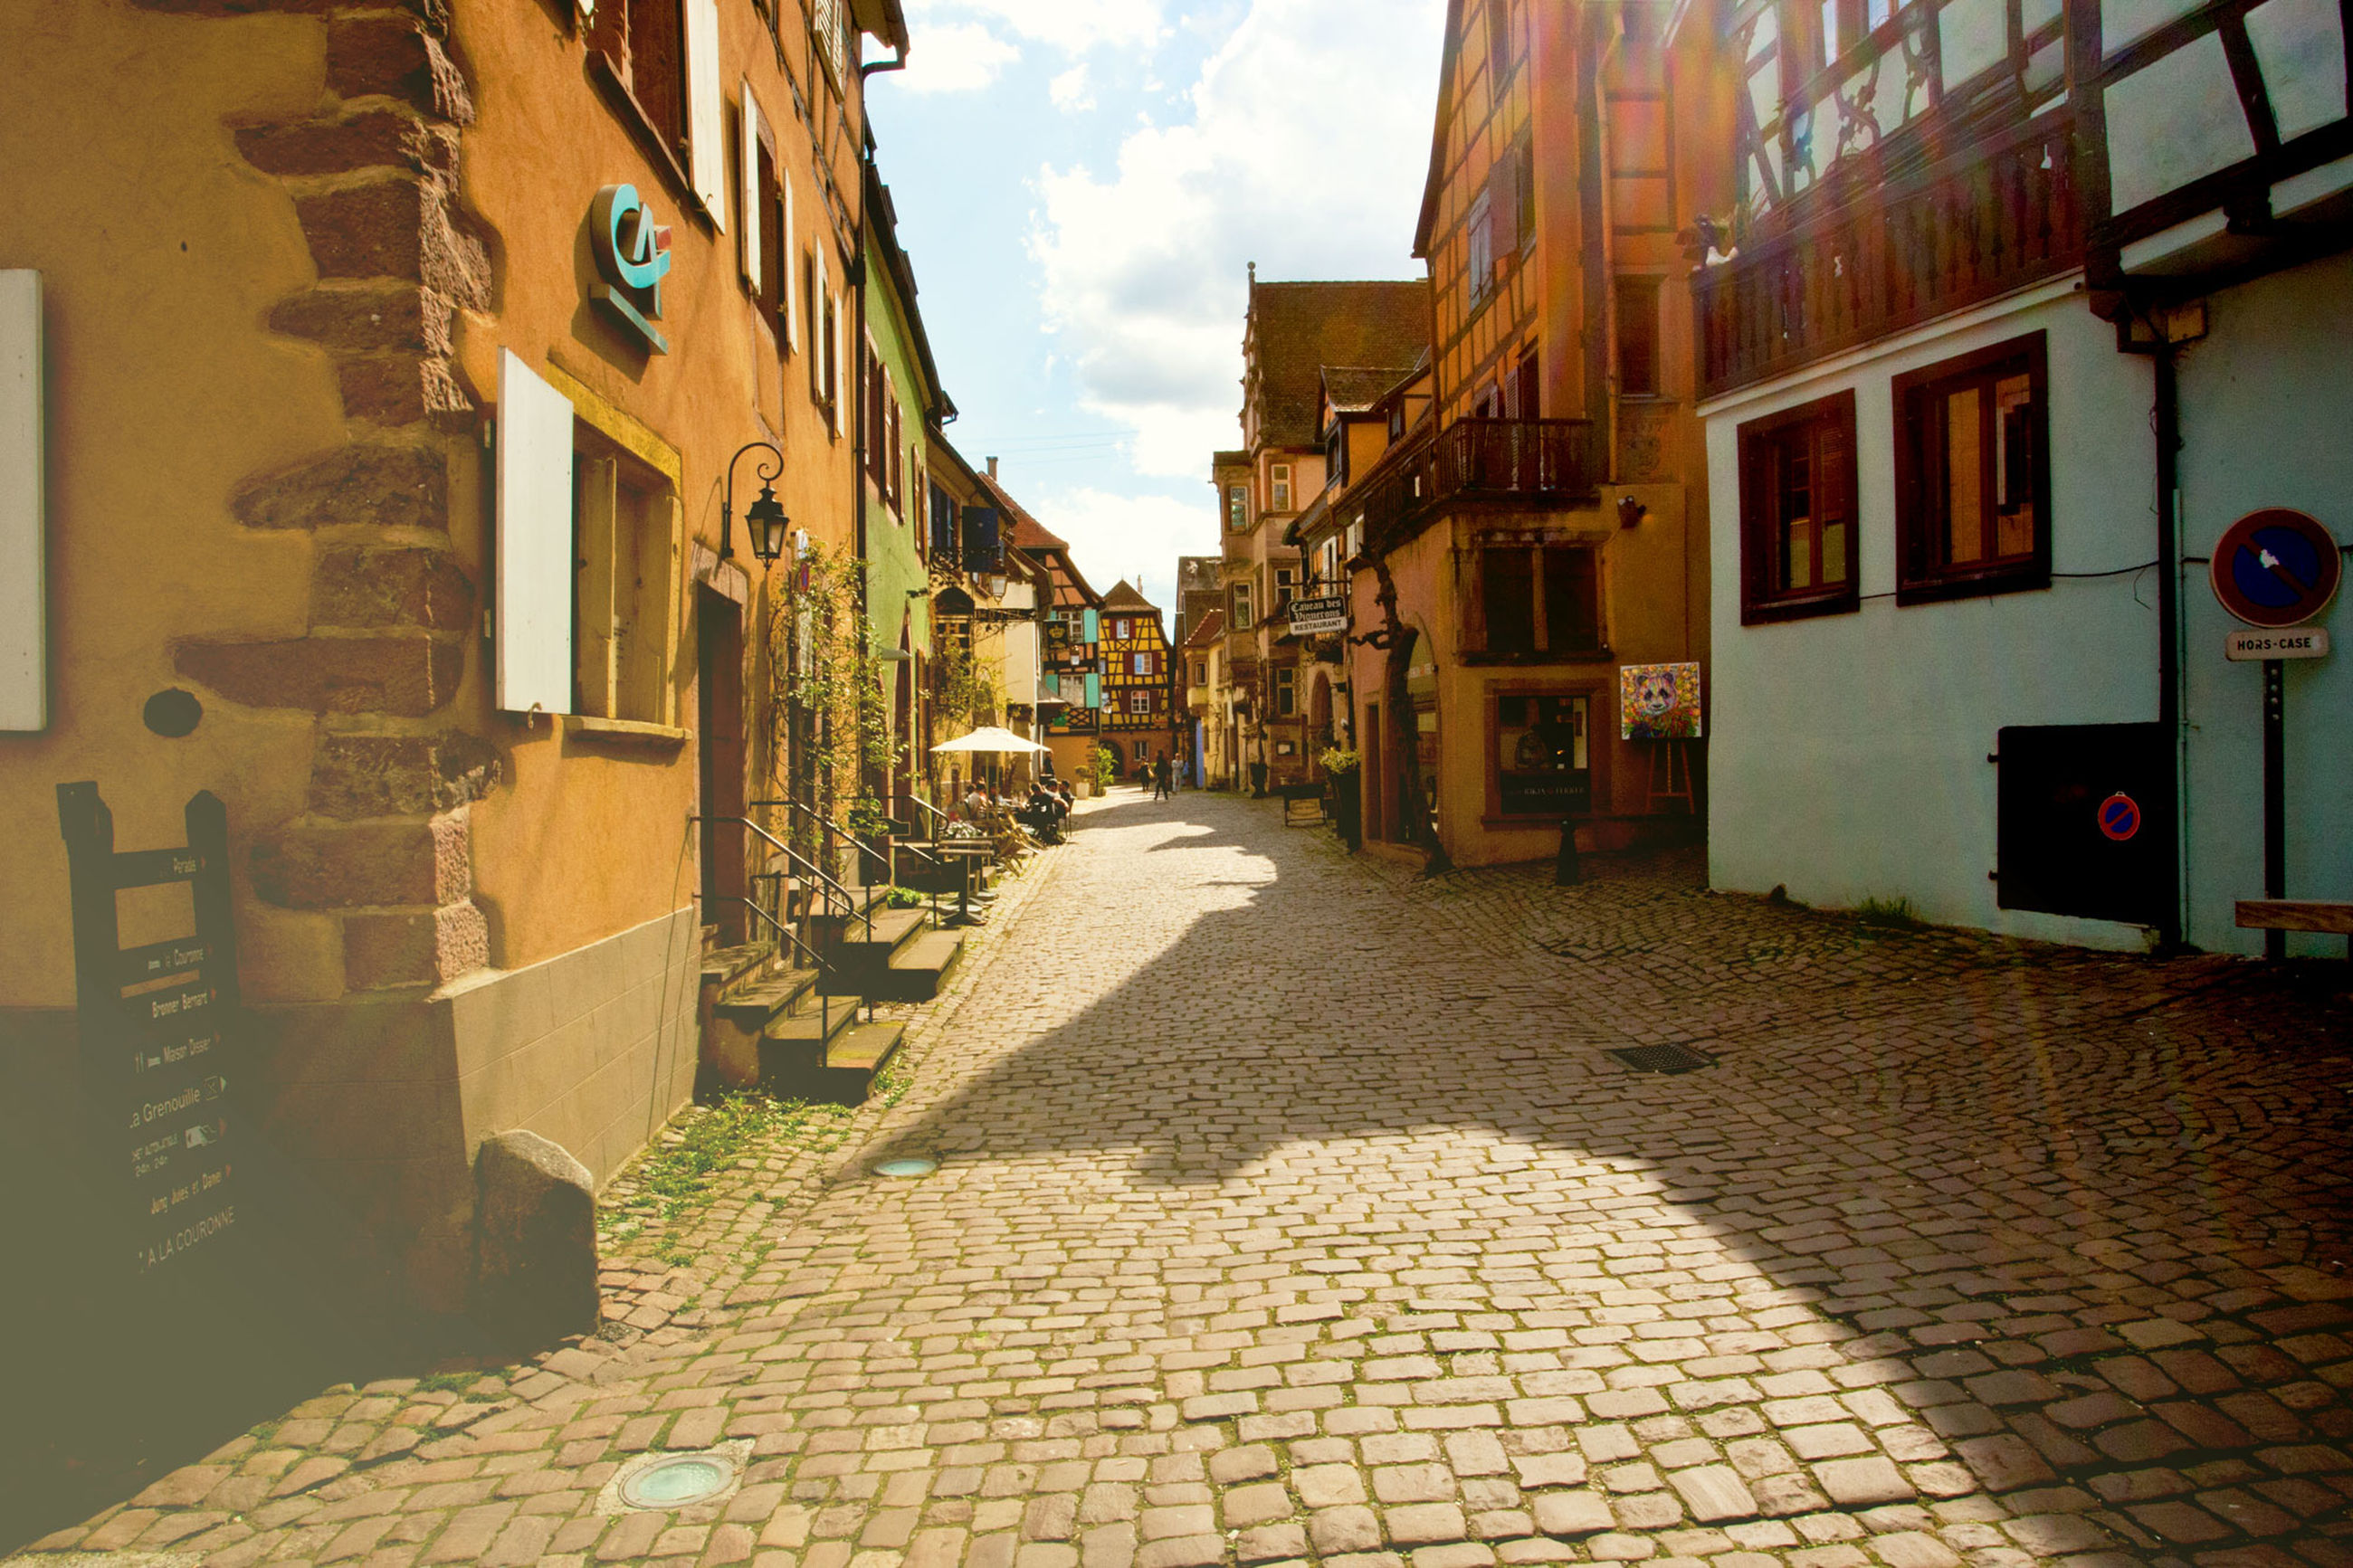 building exterior, city, street, architecture, built structure, cobblestone, building, residential district, the way forward, direction, footpath, nature, sky, cloud - sky, town, outdoors, transportation, no people, day, house, alley, paving stone, long